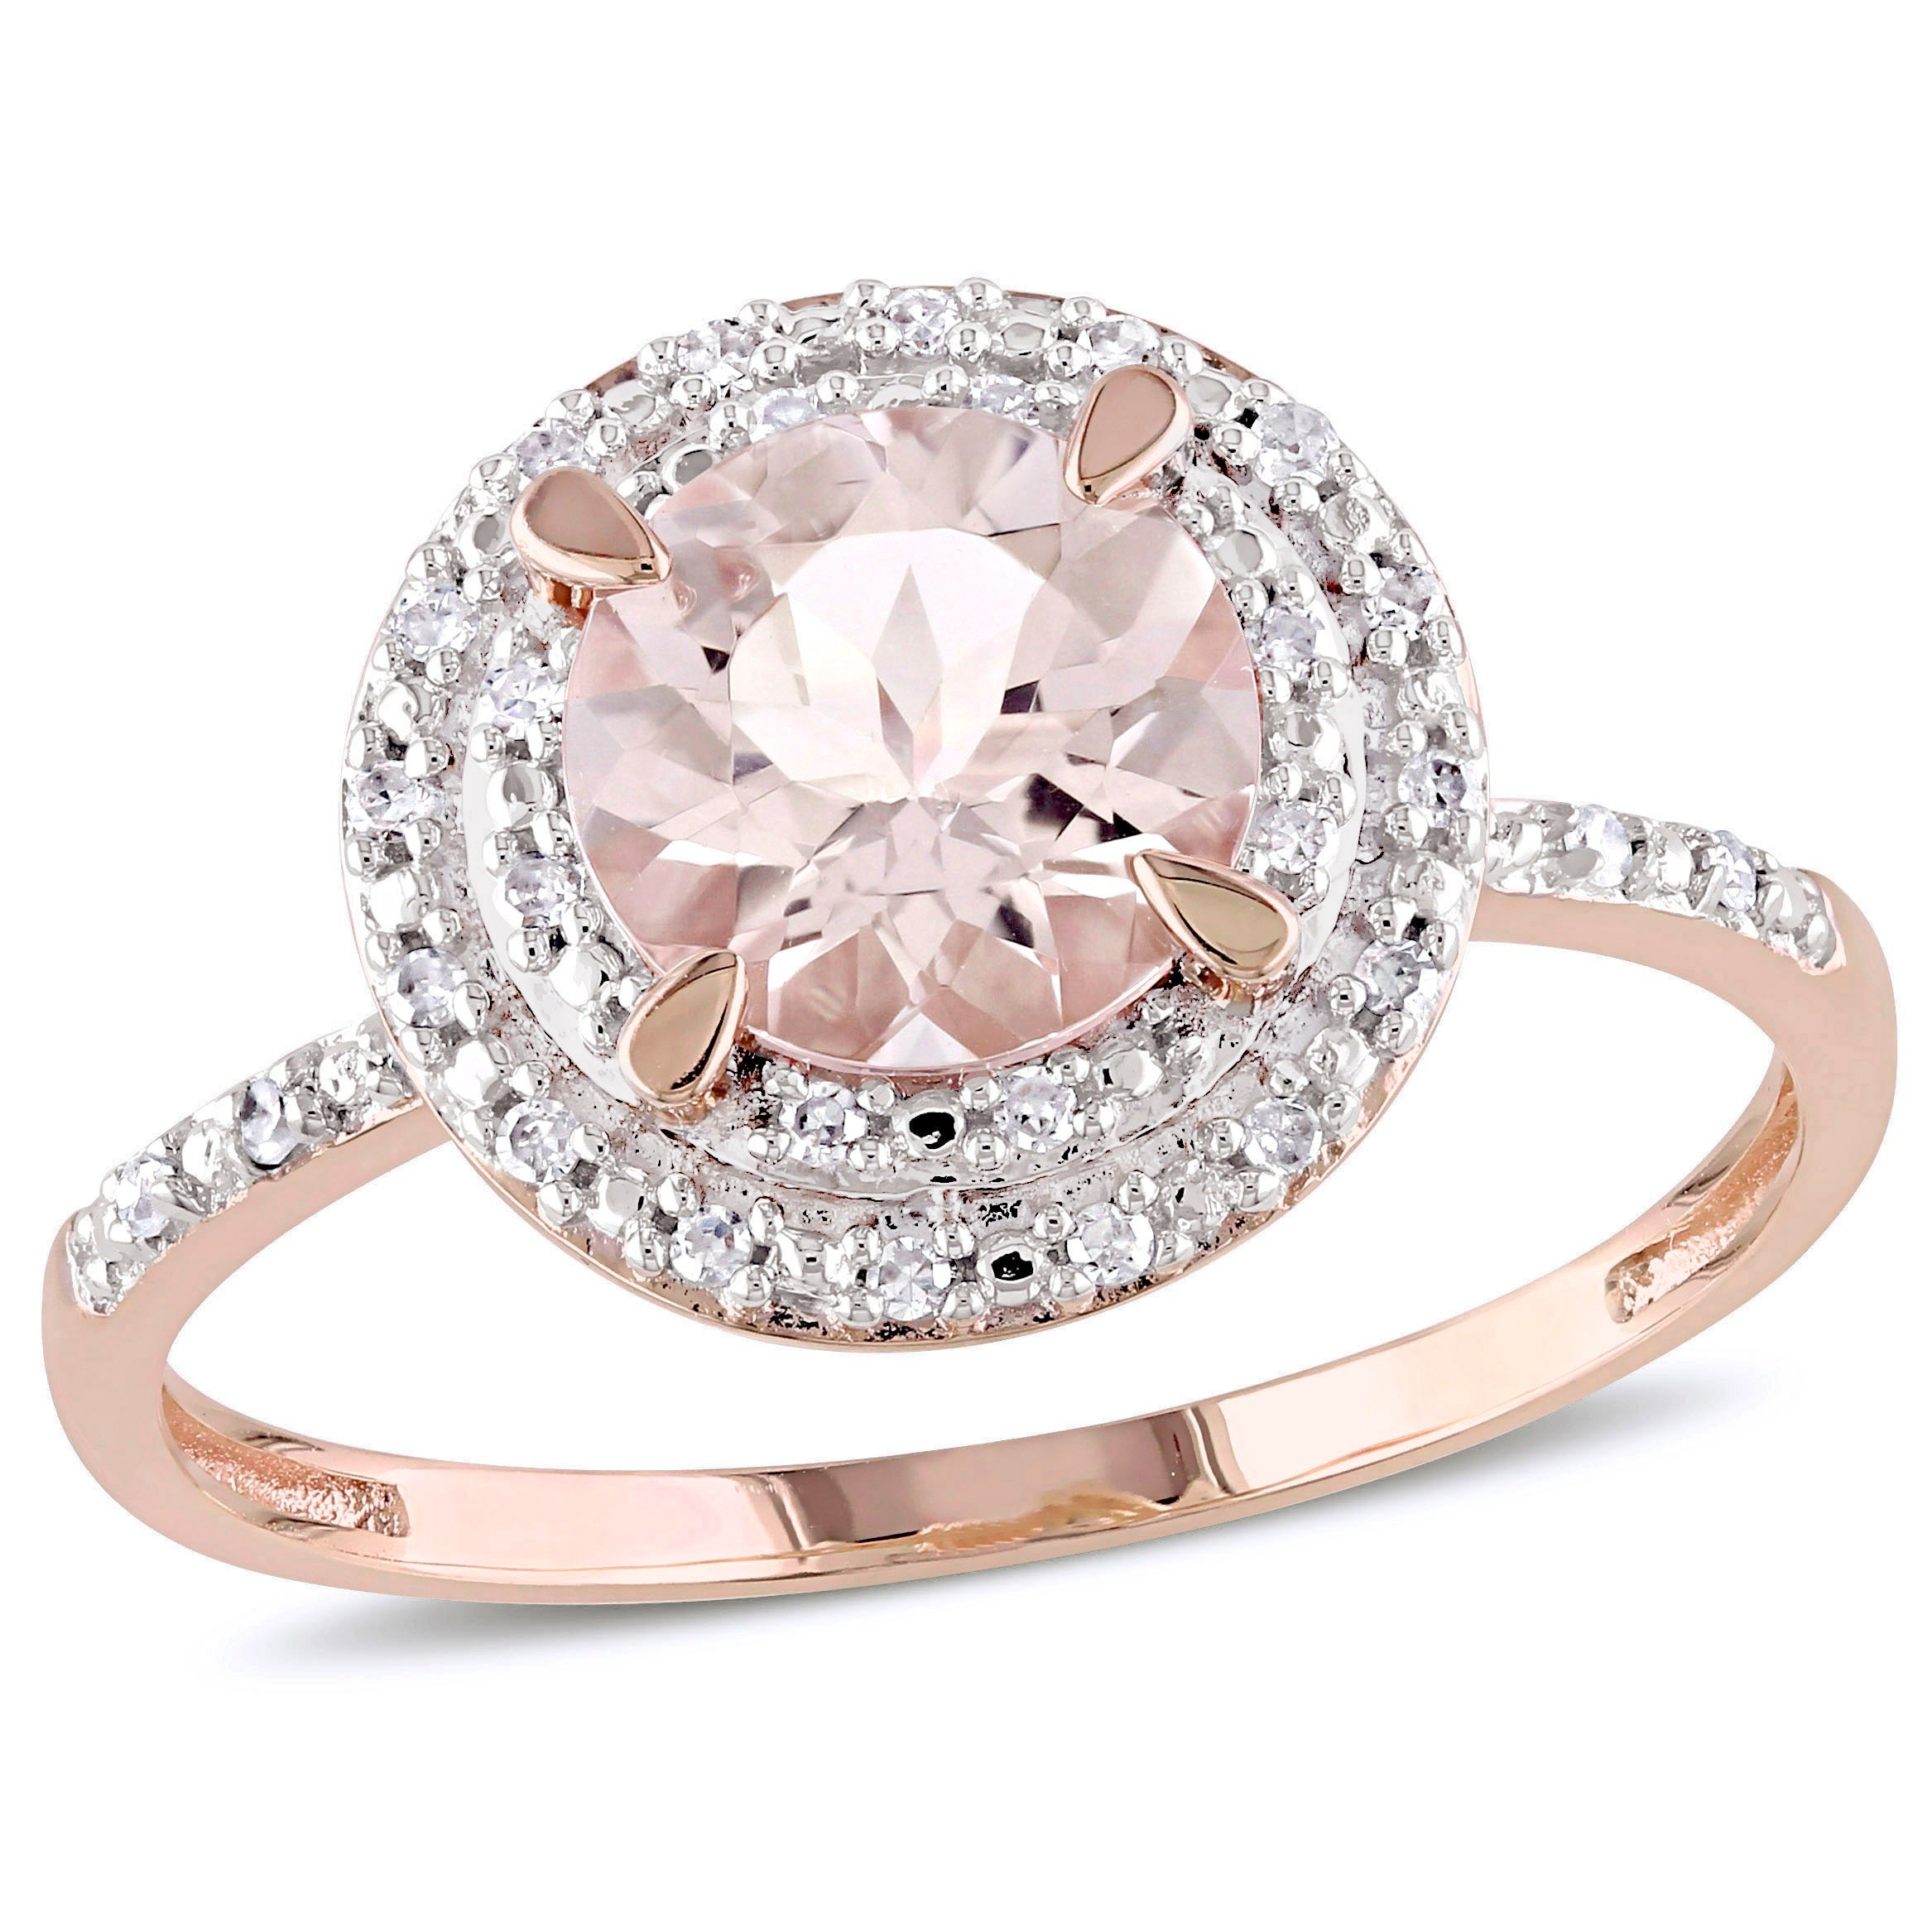 anderson rings engagement should img wedding flic ring a morganite get you